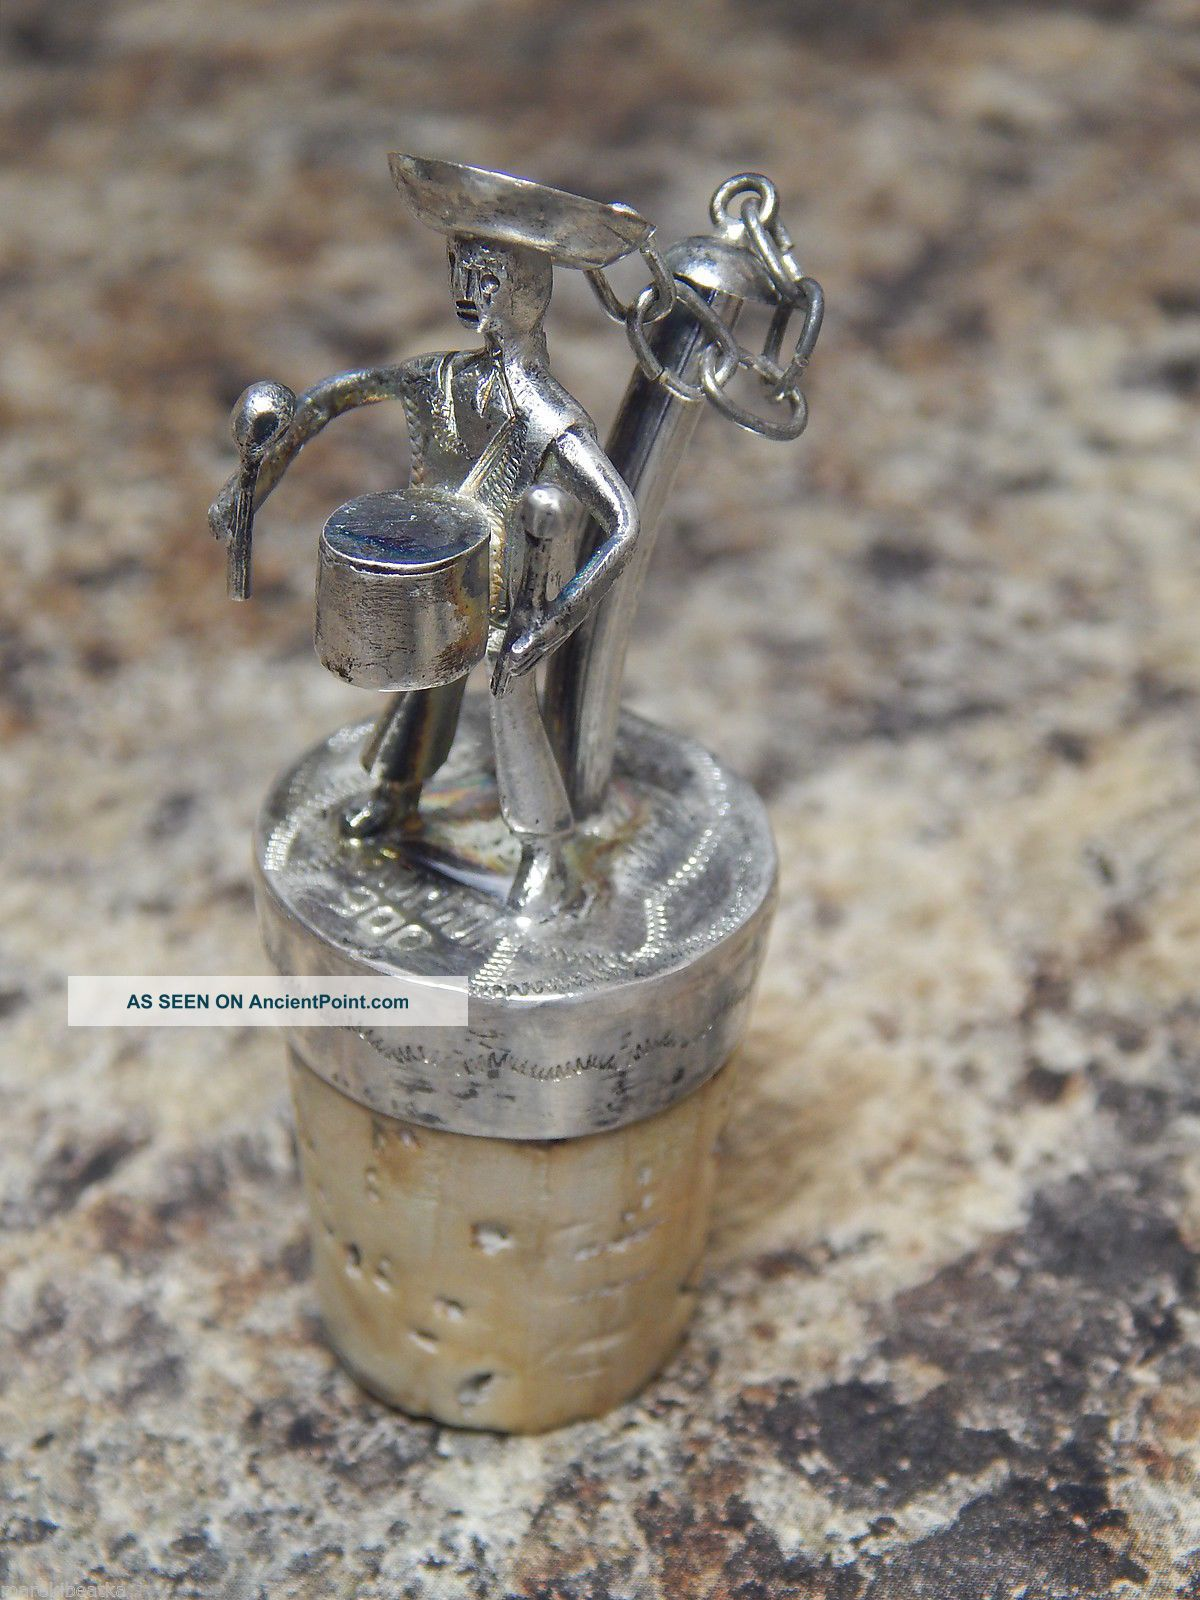 Antique Italian 900 Silver Figural Drummer Bottle Stopper With Cork 2 Other Antique Non-U.S. Silver photo